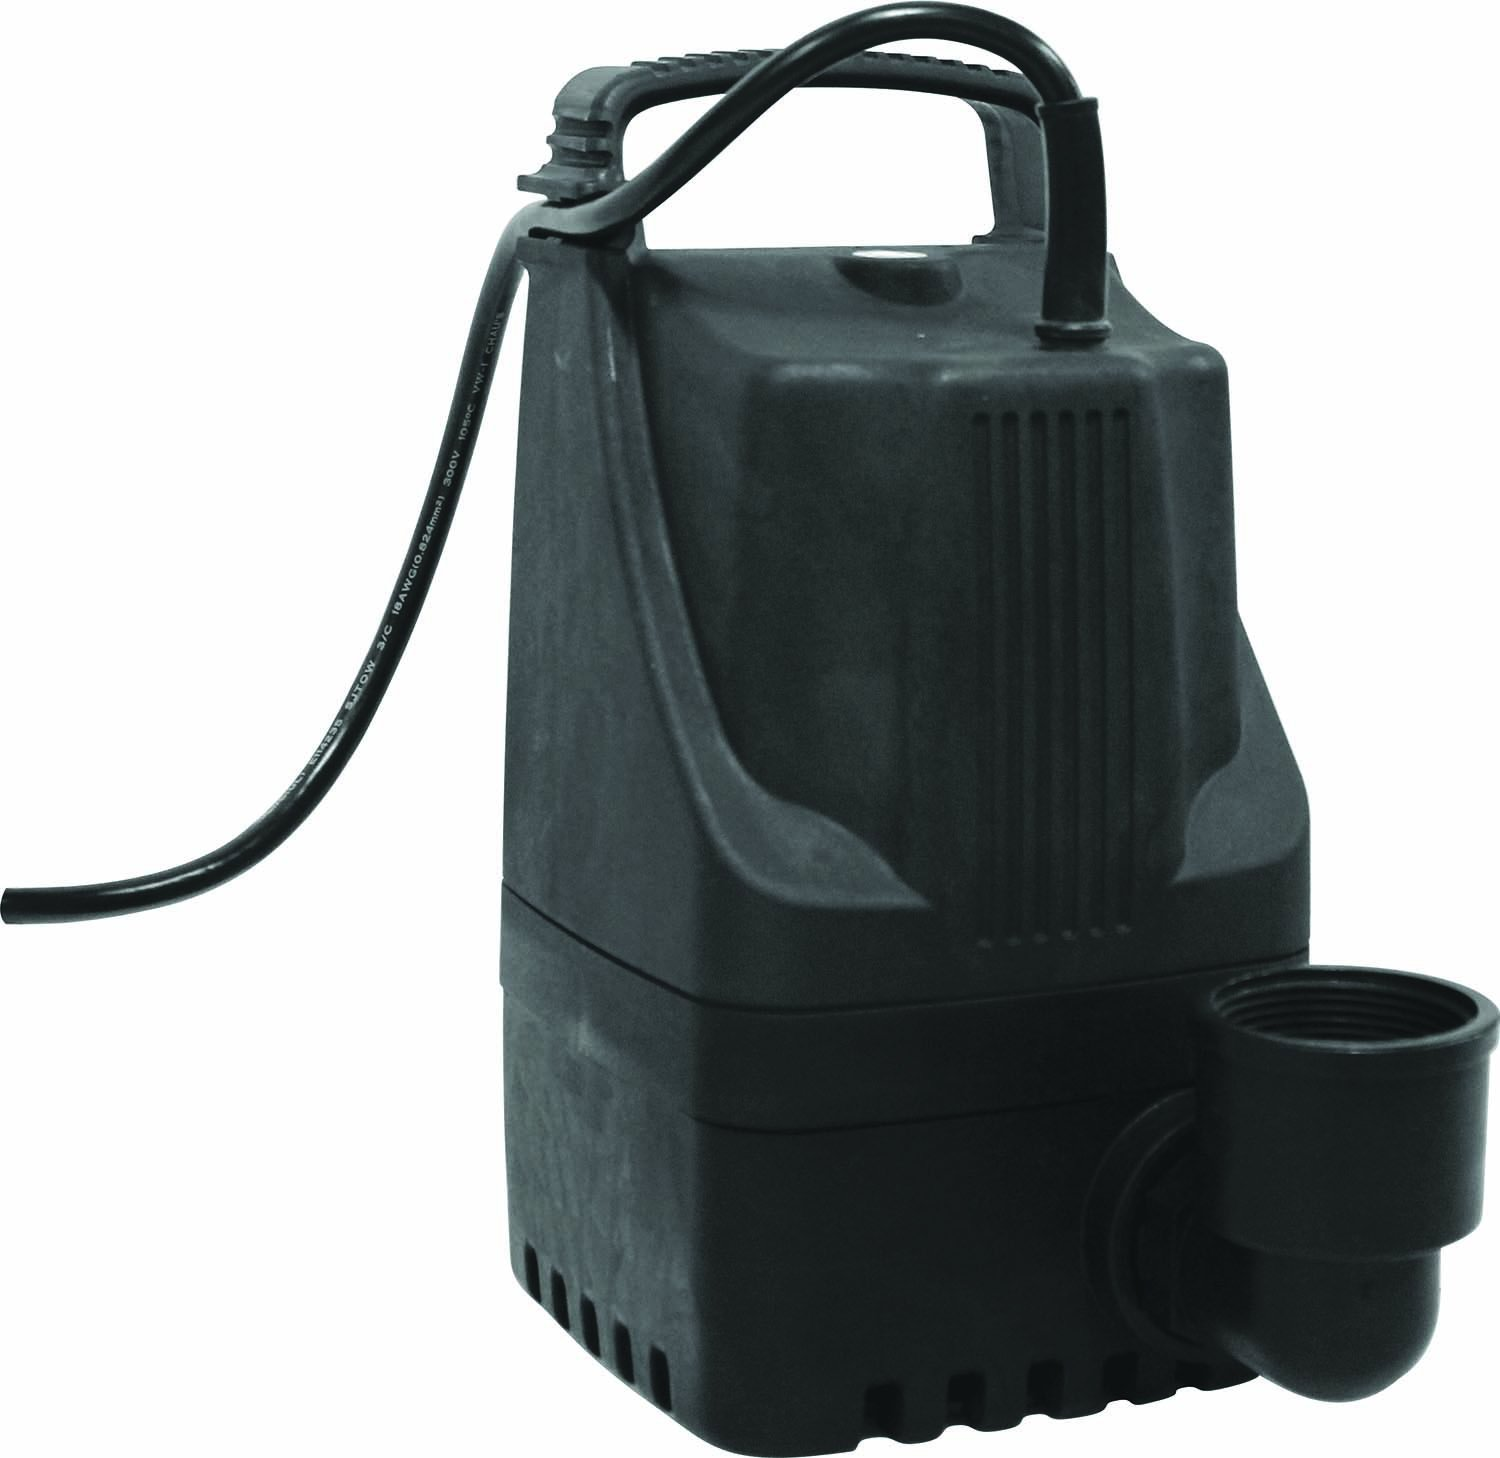 EasyPro Pond Products TLS1850 Spirit Pond and Waterfall Pumps, 1850 GPH